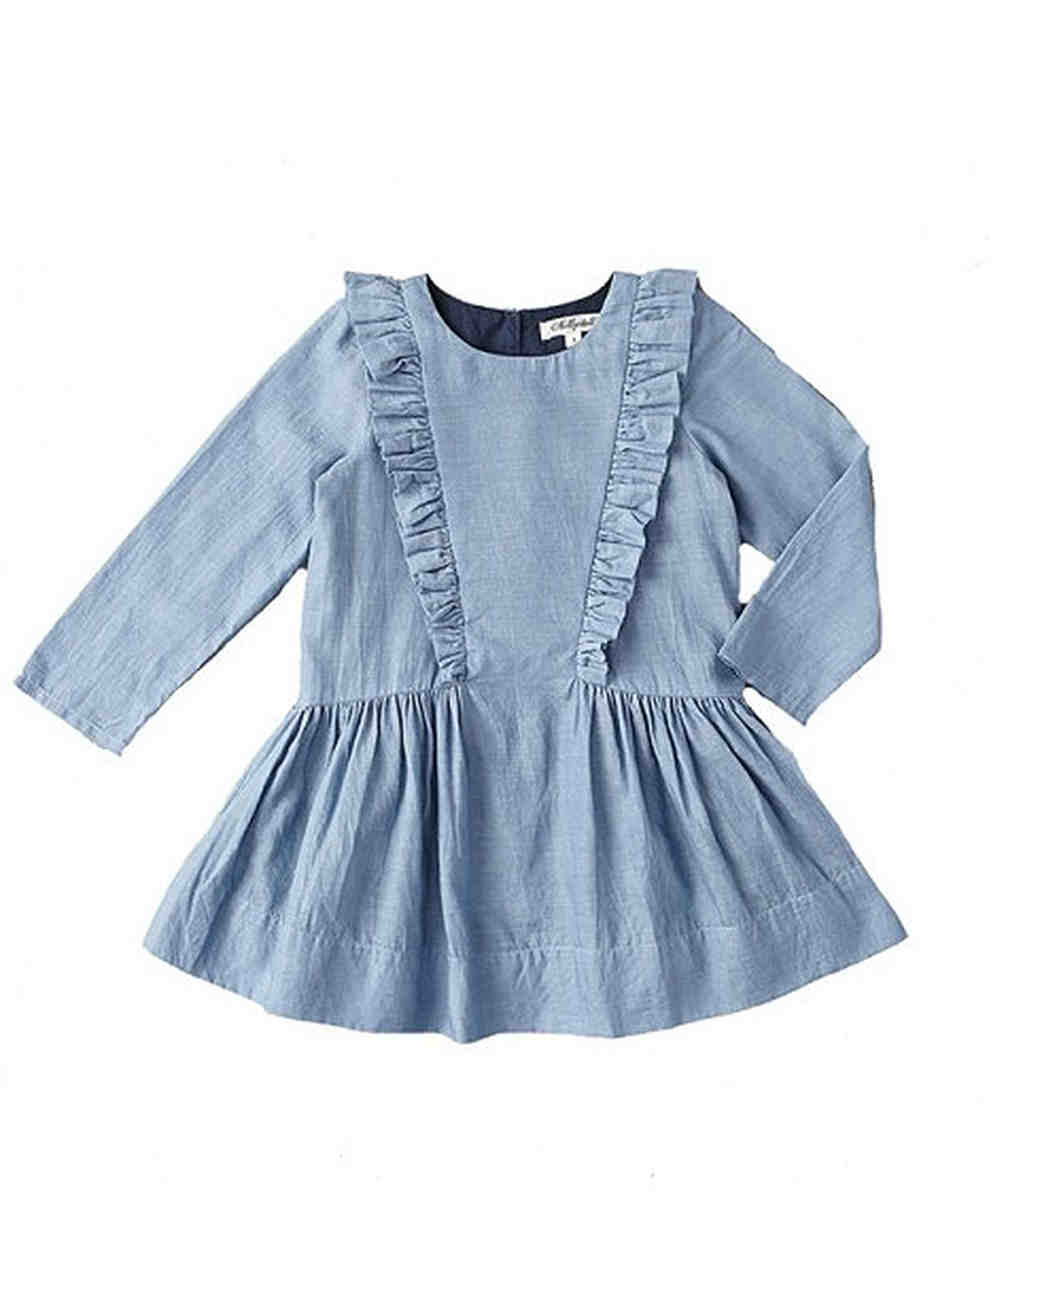 flower-girl-dresses-poppys-closet-bianca-denim-dress-0216.jpg